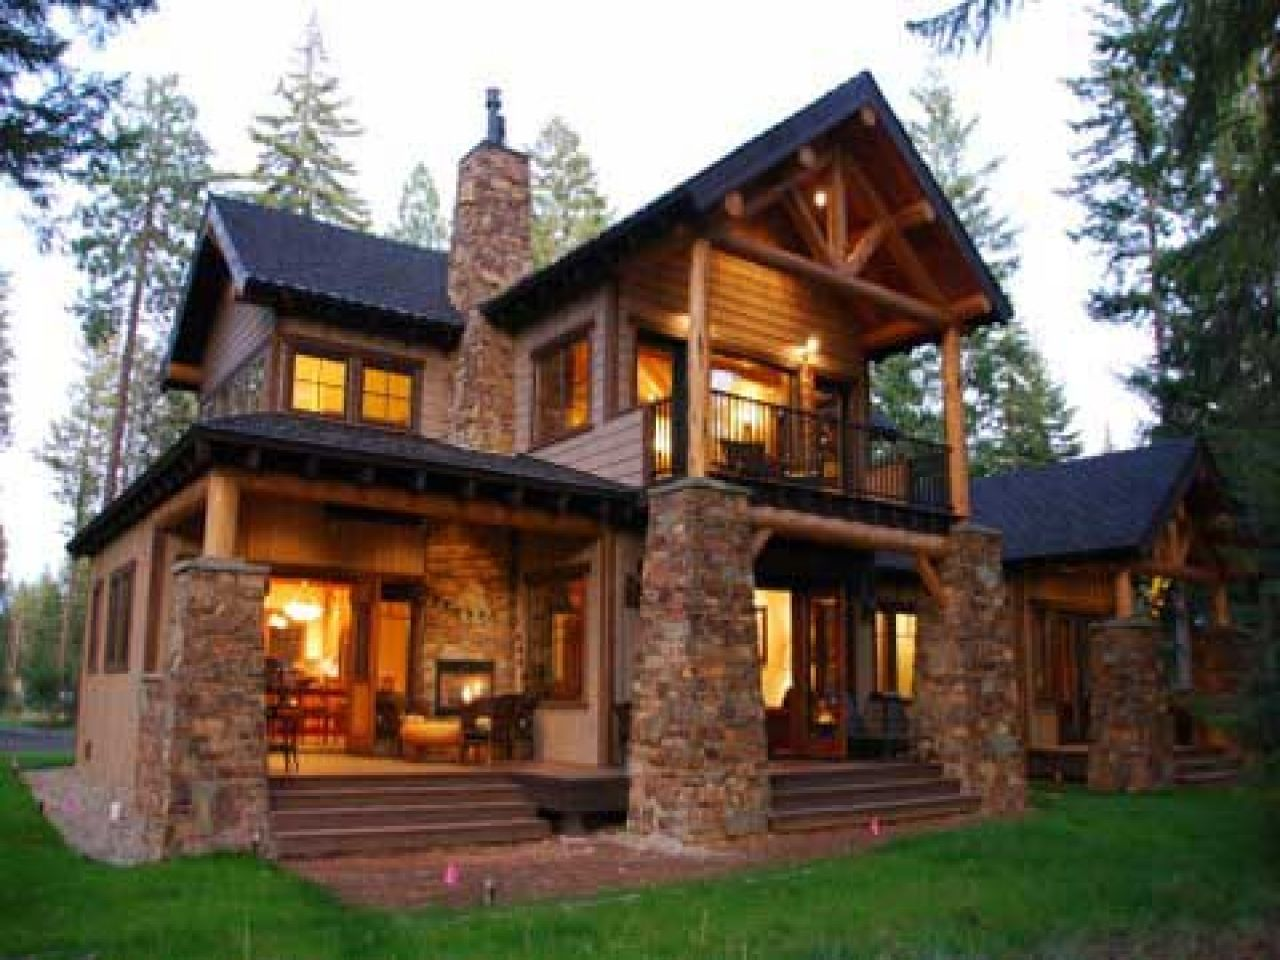 Mountain Homes Colorado Style Homes Mountain Lodge Style Home Plans Mountain Lodge Lodge Style House Plans Free House Plans Lodge Style